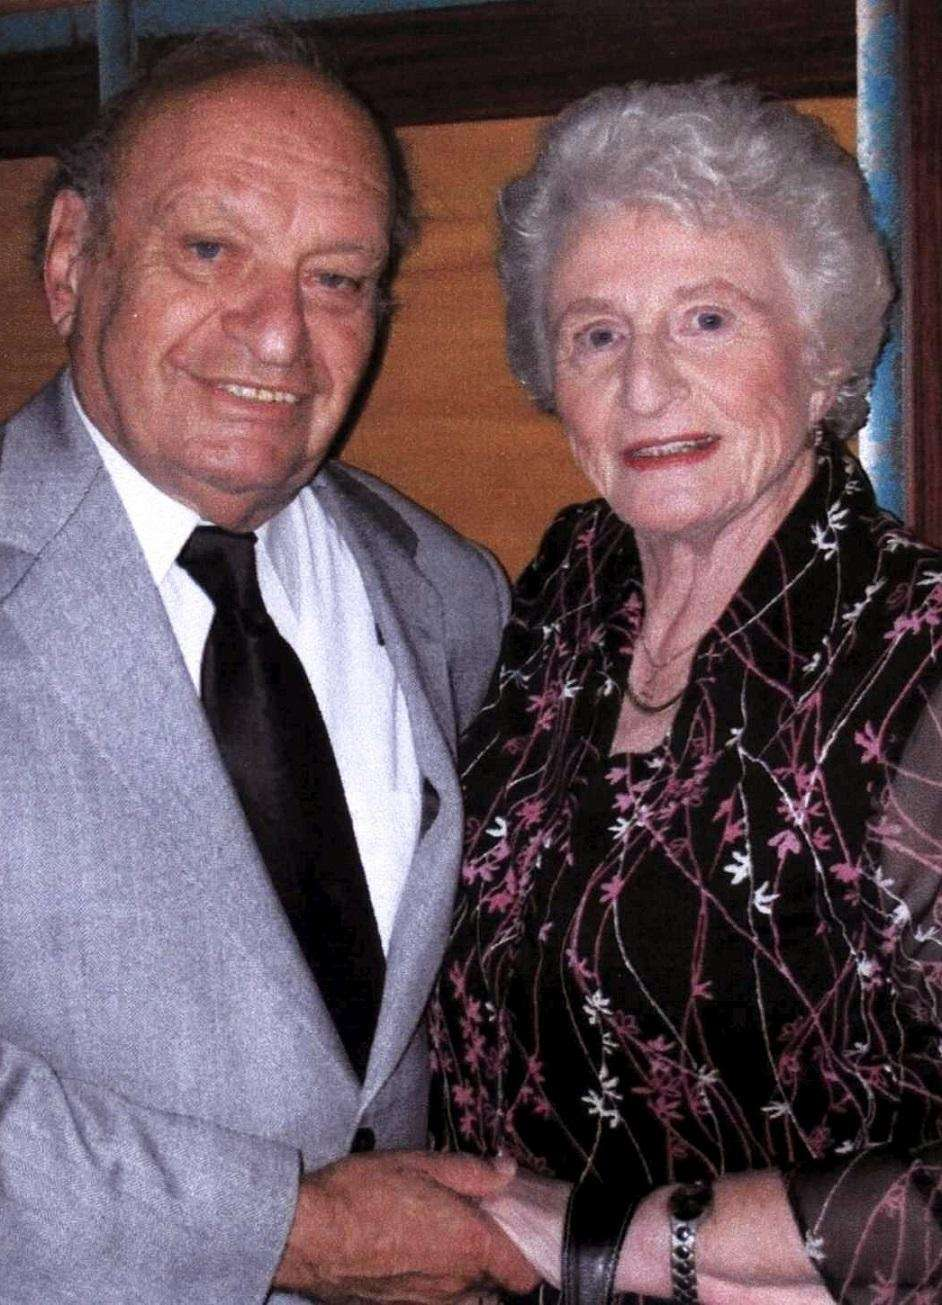 Mira and Rolf Grayson of Melville met and